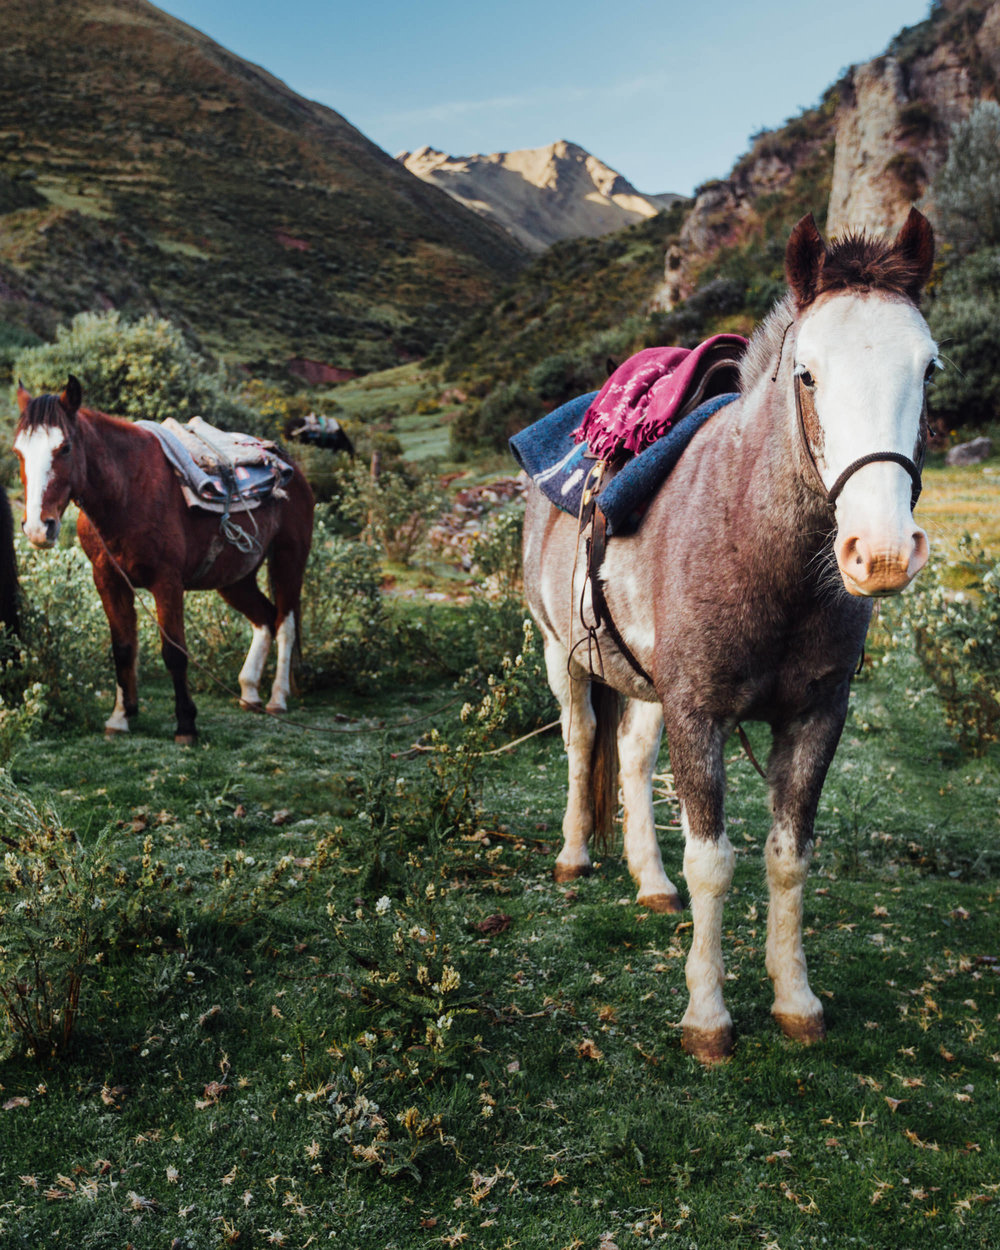 Porters Horses on Trek to Machu Picchu